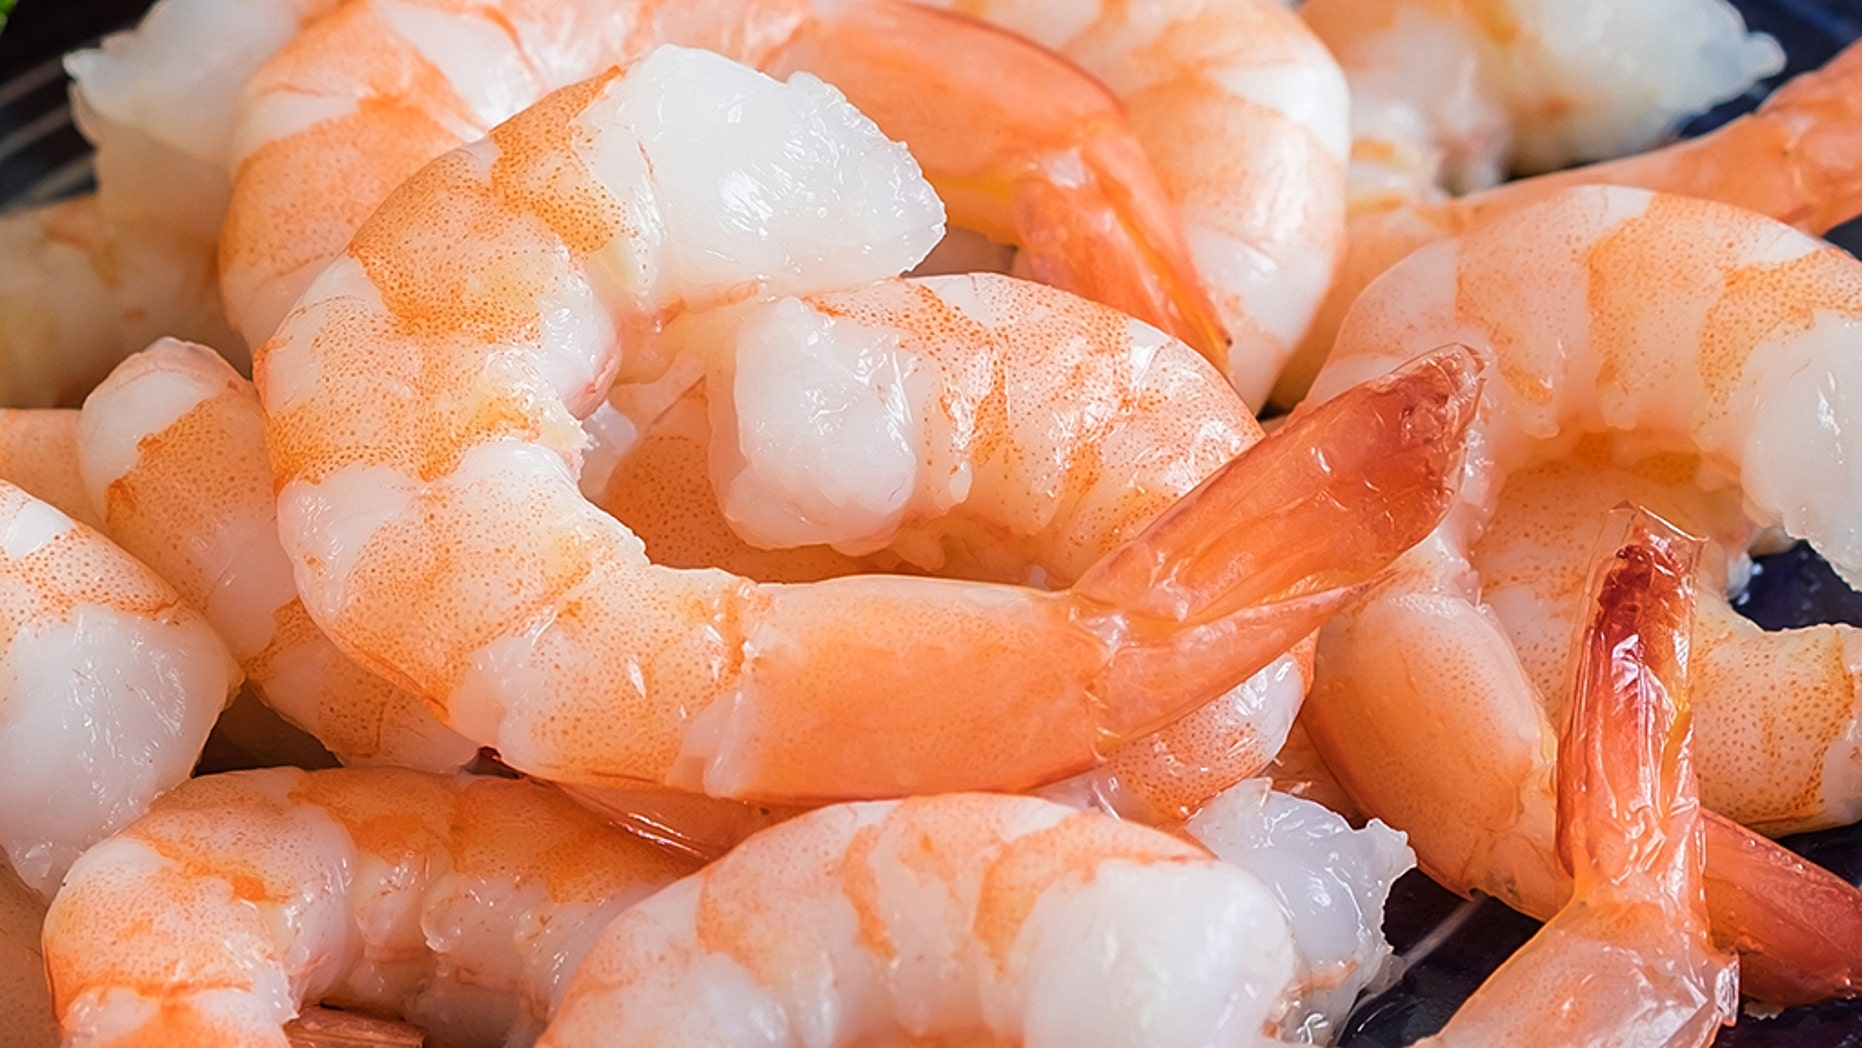 Cooked shrimp recalled due to possibility of spoilage from under-cooking